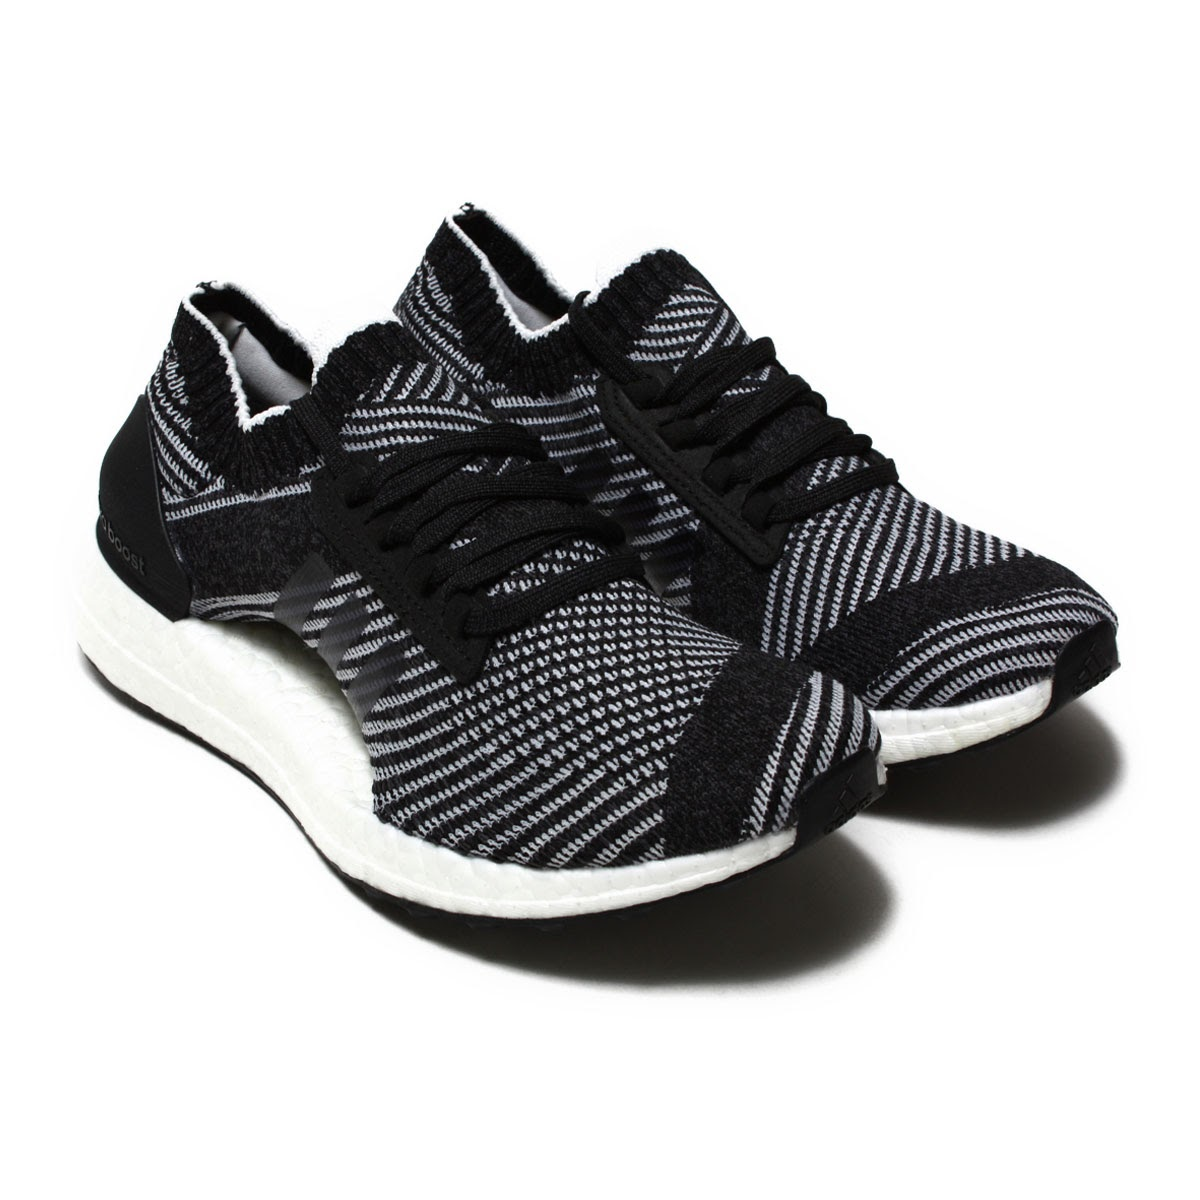 59f5148294a adidas Originals UltraBOOST X LTD (Adidas originals ultra boost X LTD) Core  Black Grey Running White 18SP-I